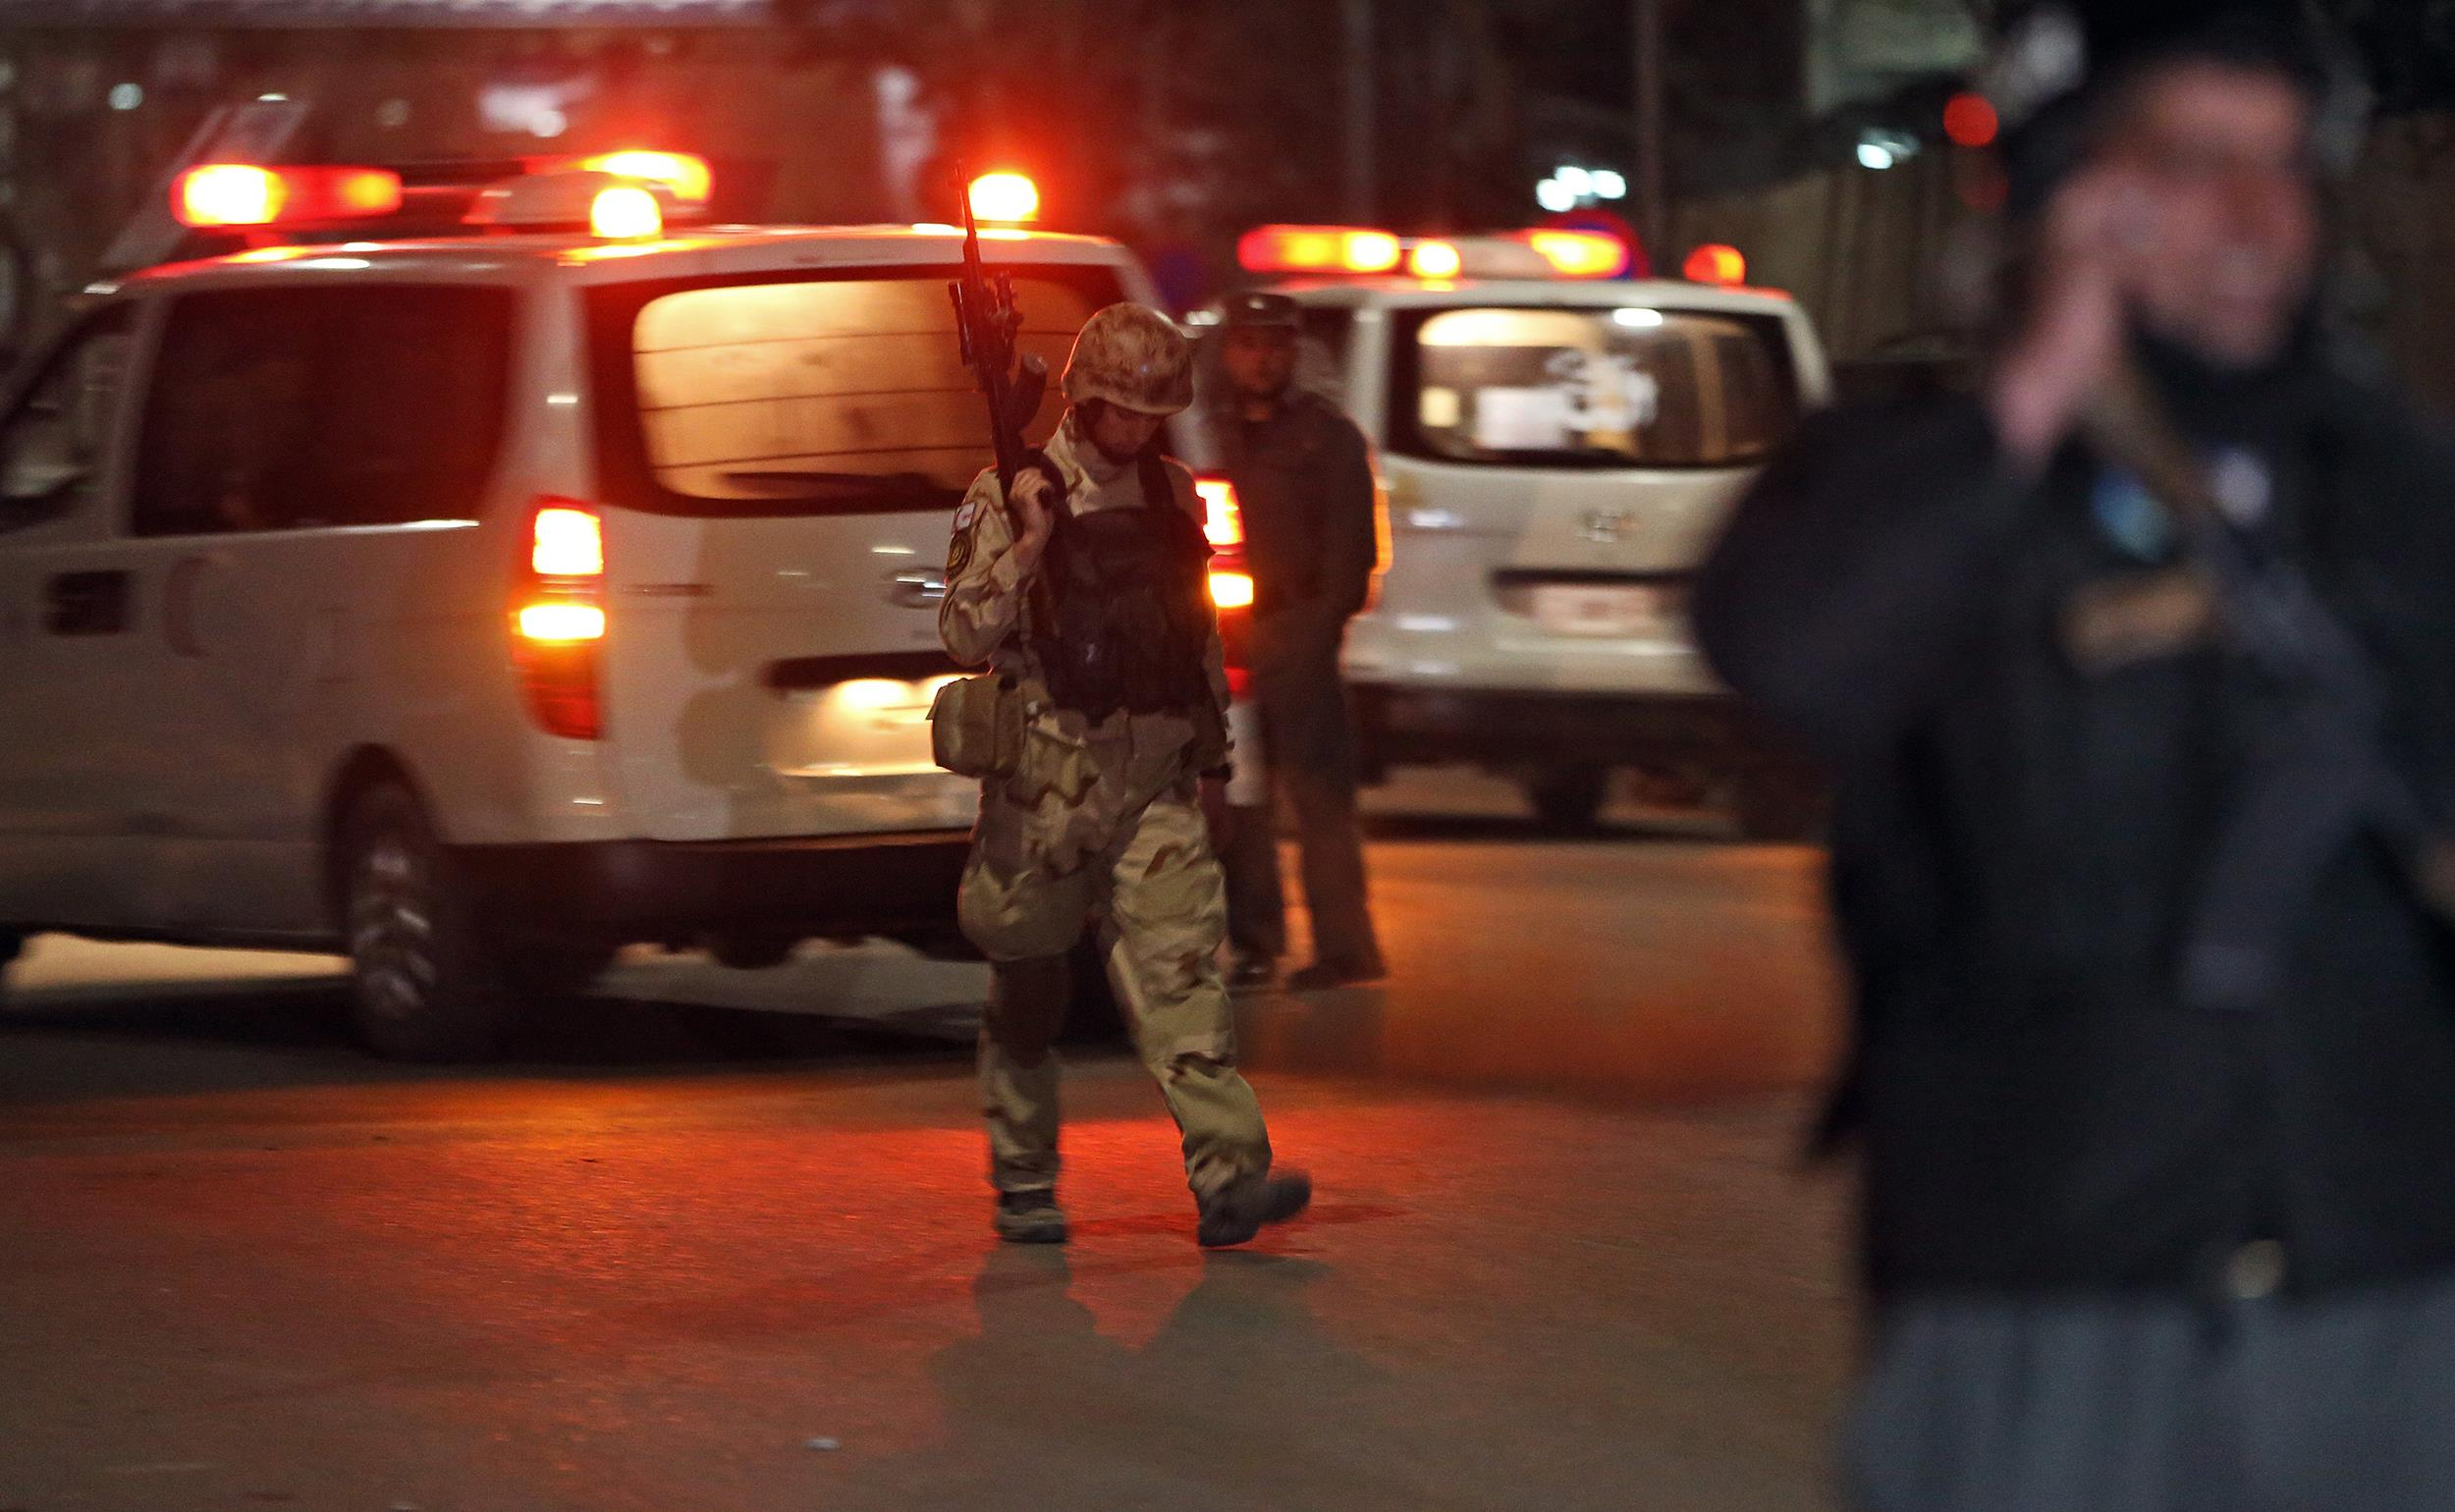 Image: An Afghan policeman walks at the site of a gun battle in Serena Hotel in Kabul